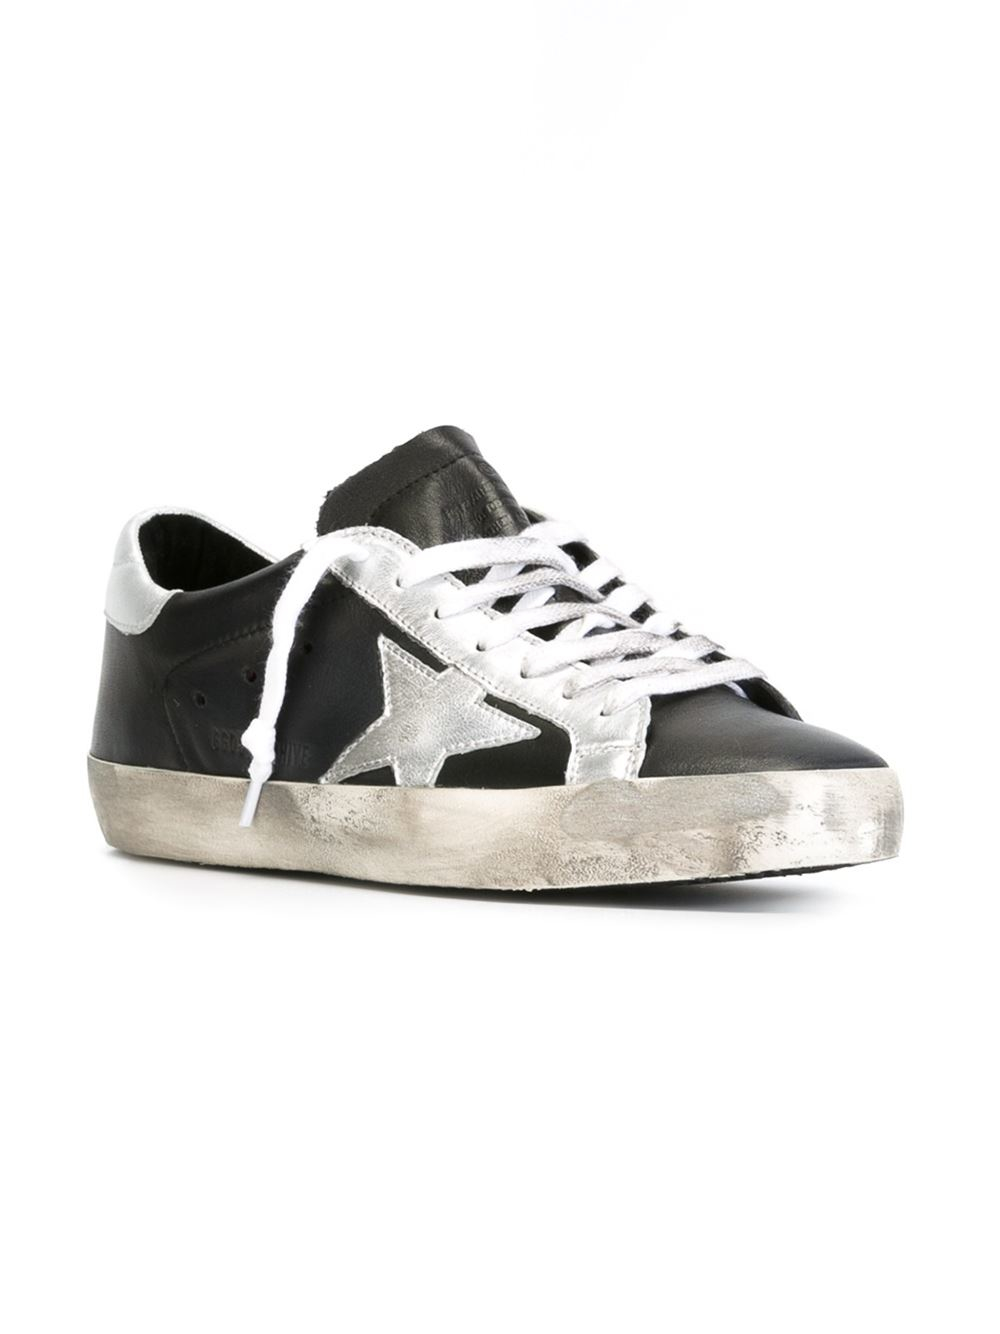 golden goose deluxe brand 39 archive super star 39 sneakers in black for men lyst. Black Bedroom Furniture Sets. Home Design Ideas